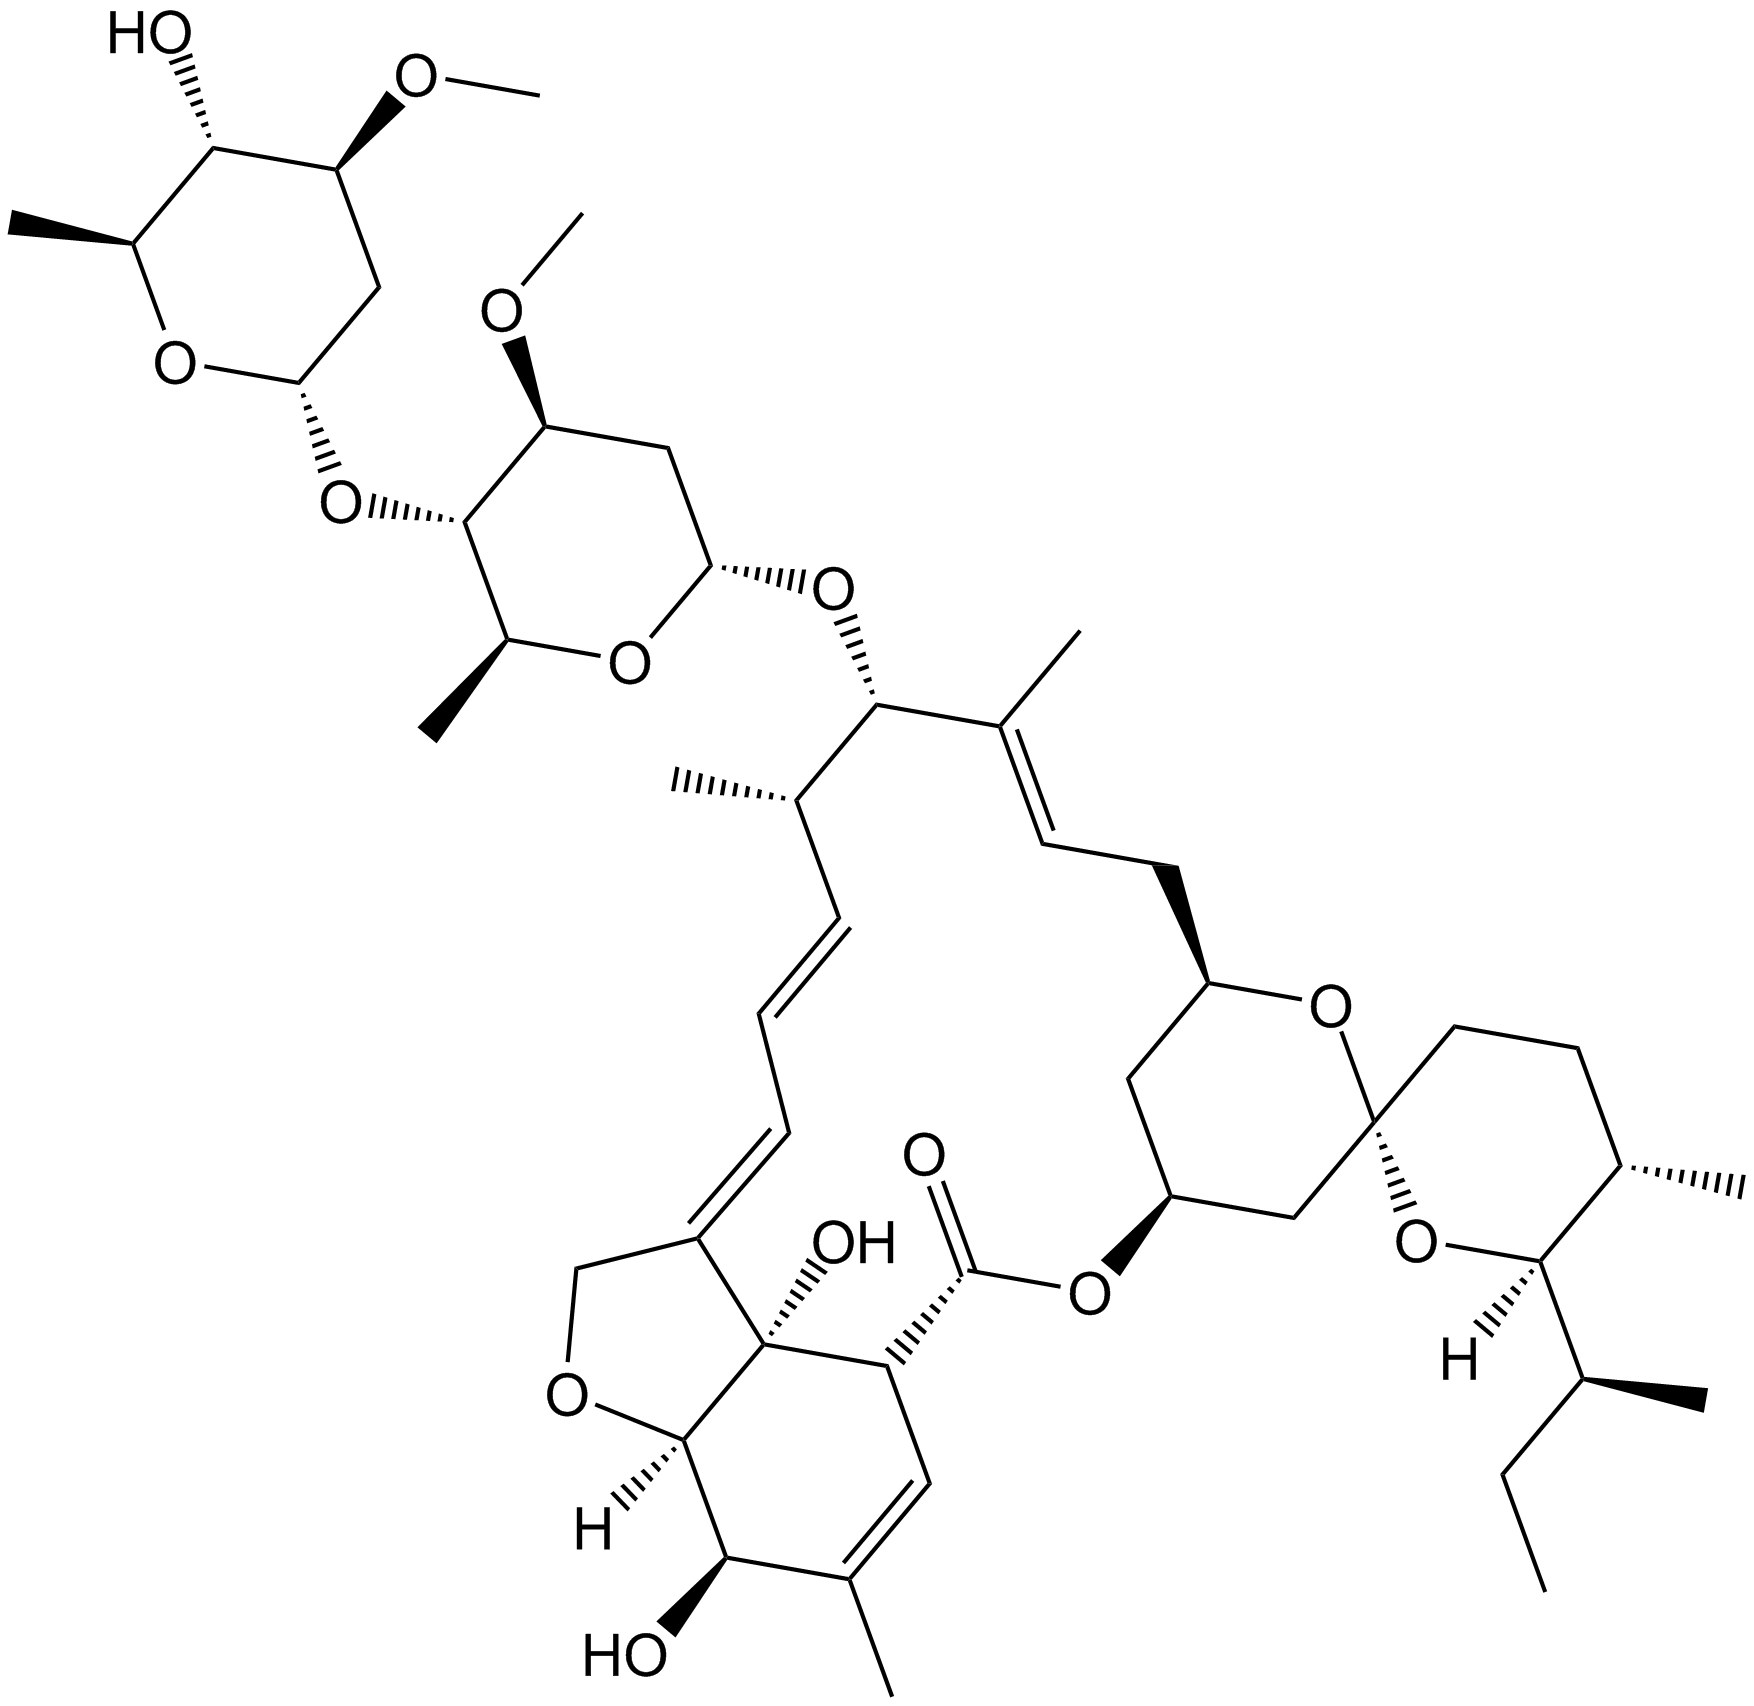 Ivermectin Chemical Properties